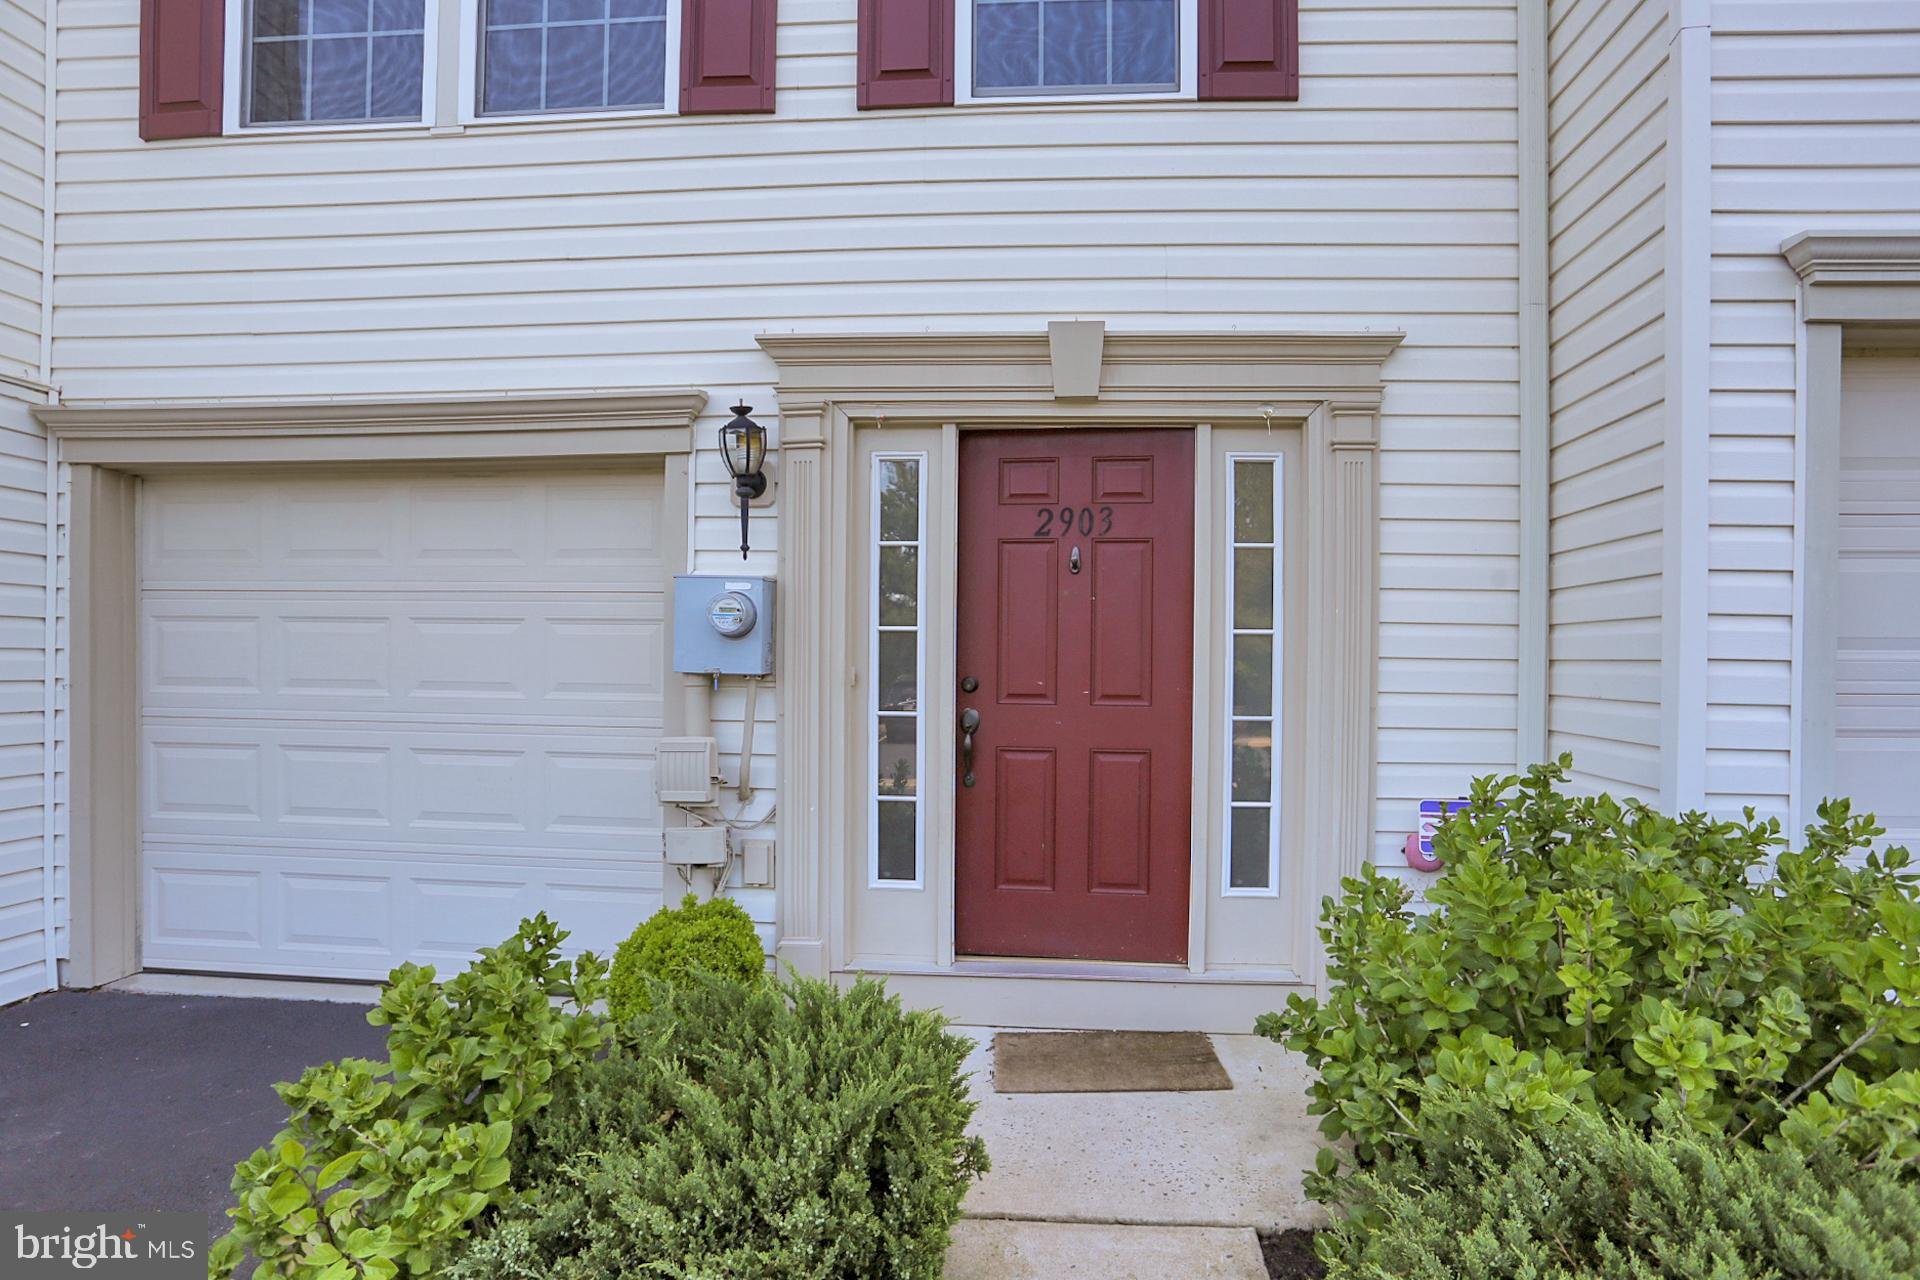 Welcome to this beautiful  home in Woodgate. It is one of the largest town home in the community. The square footage does not include the garage. The home also features a beautiful  large deck for out living. The home is available for move in July 11.  The home needs a little sprucing up, but other than that it is beautiful and ready to go. Owner intends to replace the microwave, repair the screen to the deck and do other touch ups.